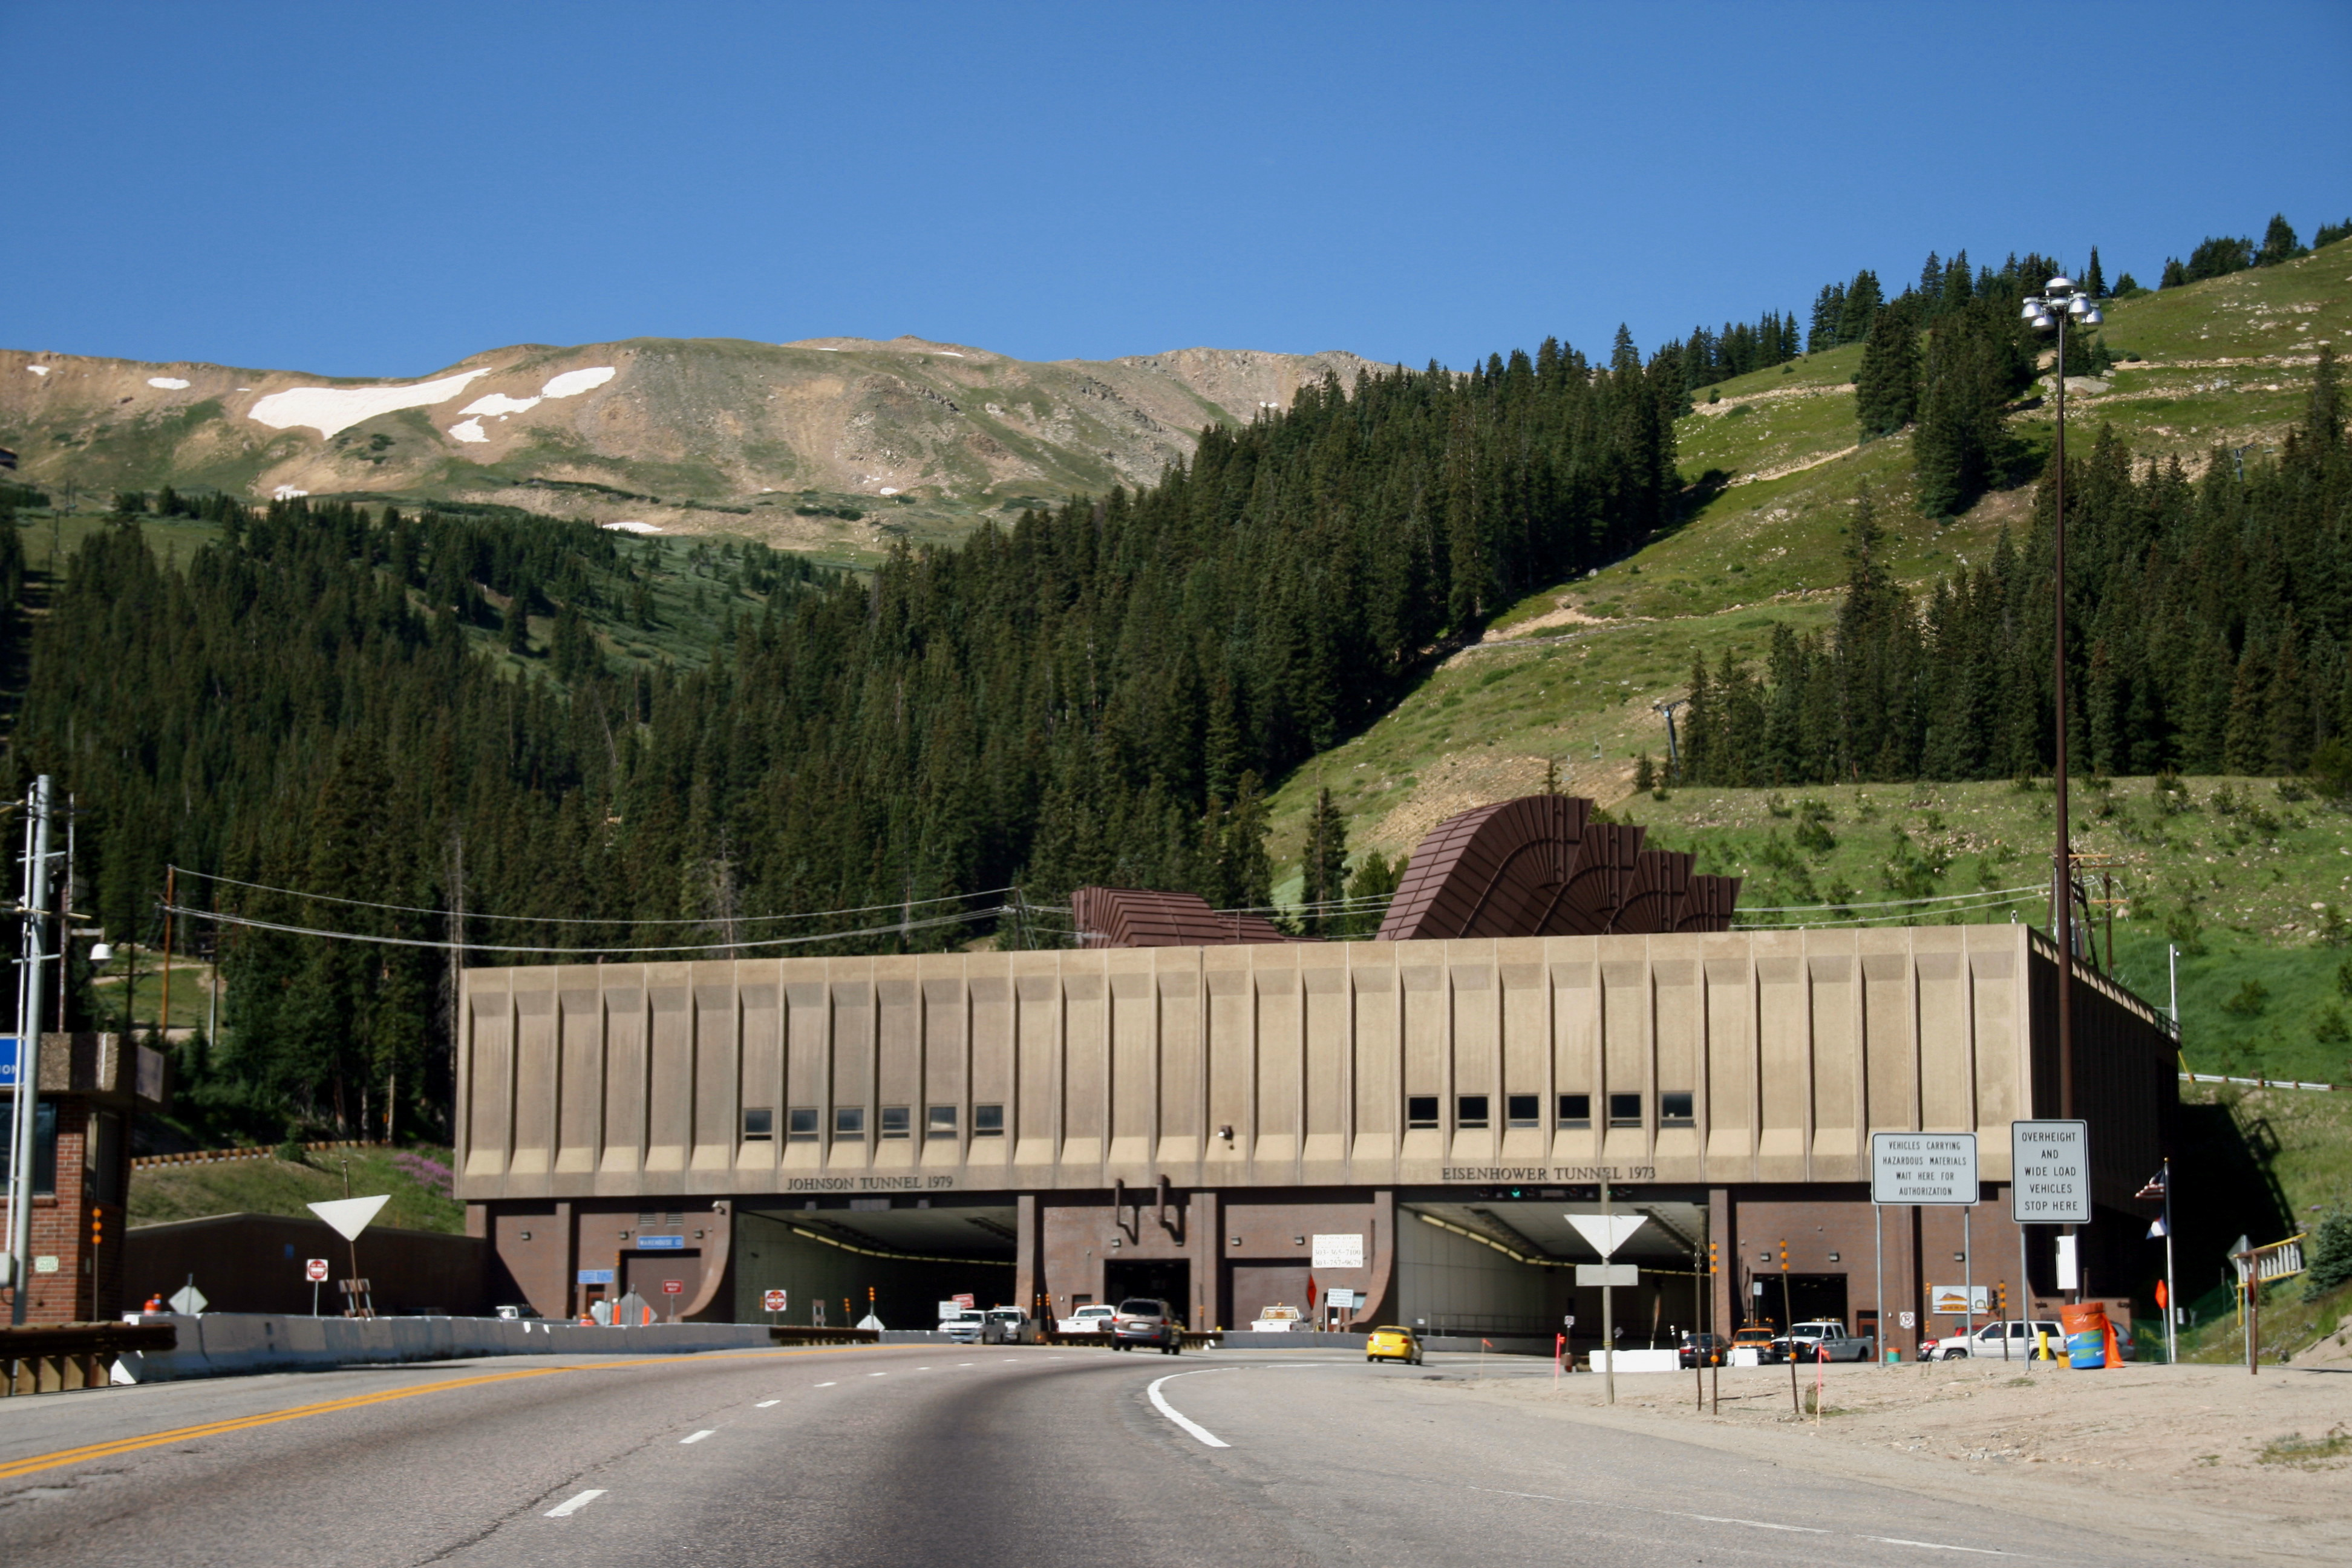 Eisenhower tunnel entrance